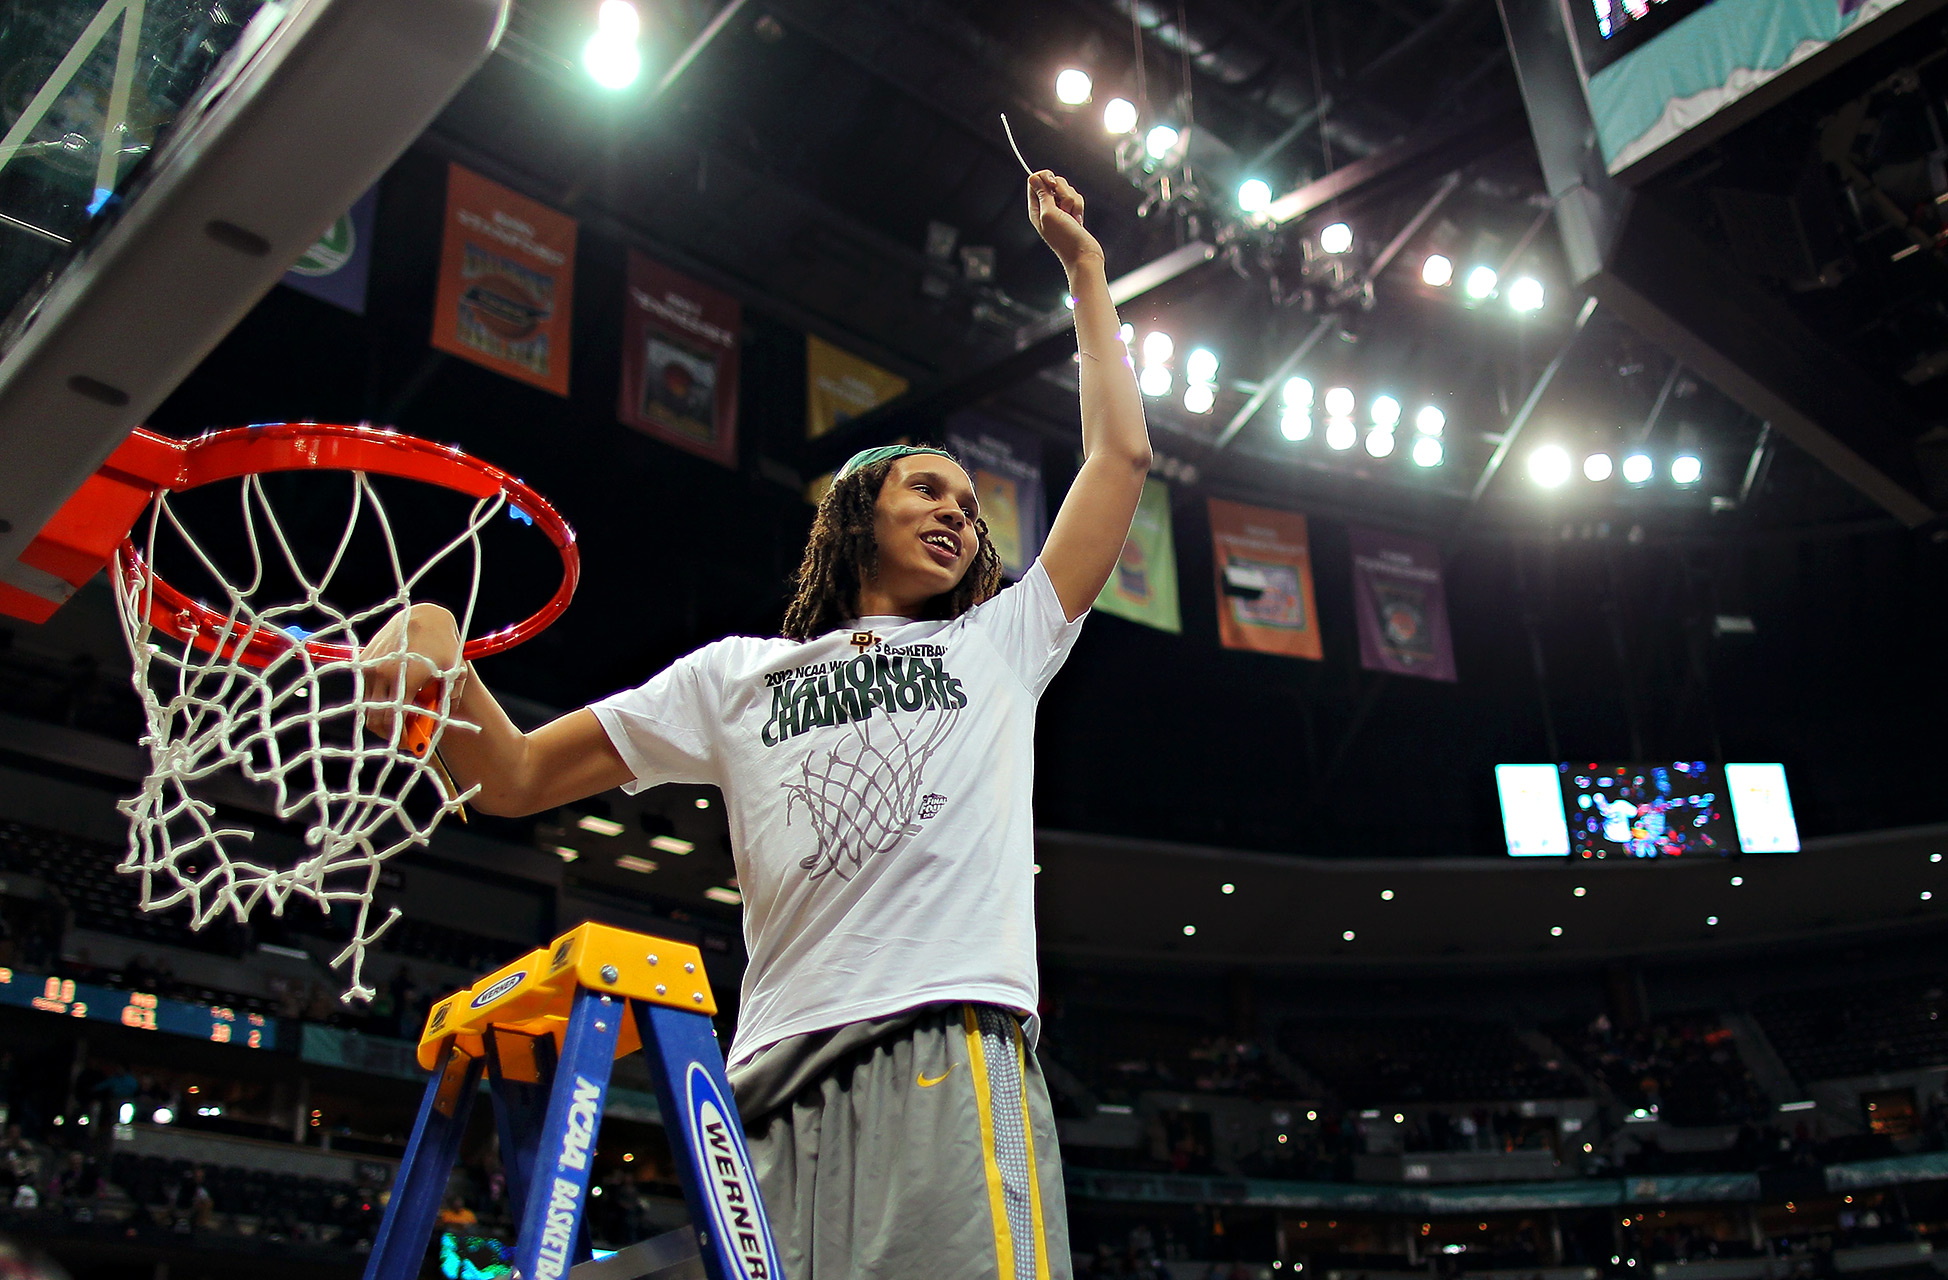 Brittney Griner lifted Baylor to the NCAA title as a junior in 2012 and had 26 points and 13 rebounds in the title game against Notre Dame.